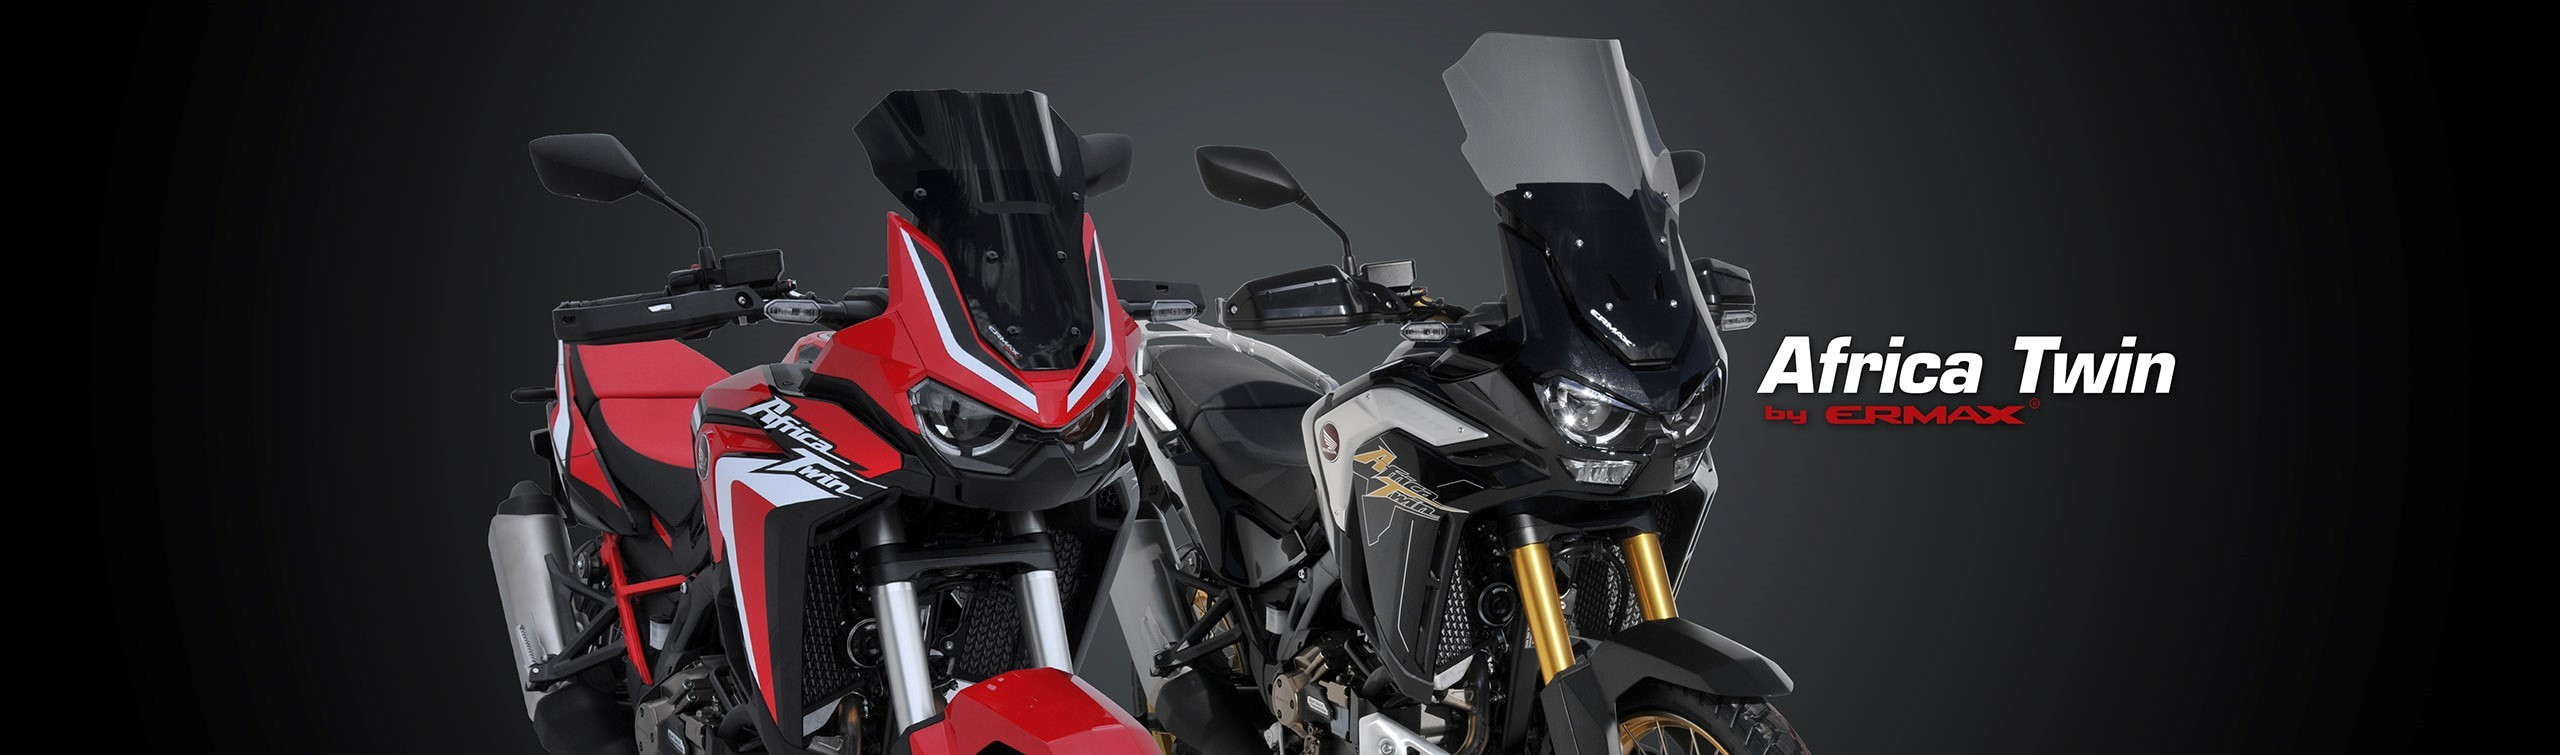 Africa Twin CRF 1100 L by Ermax